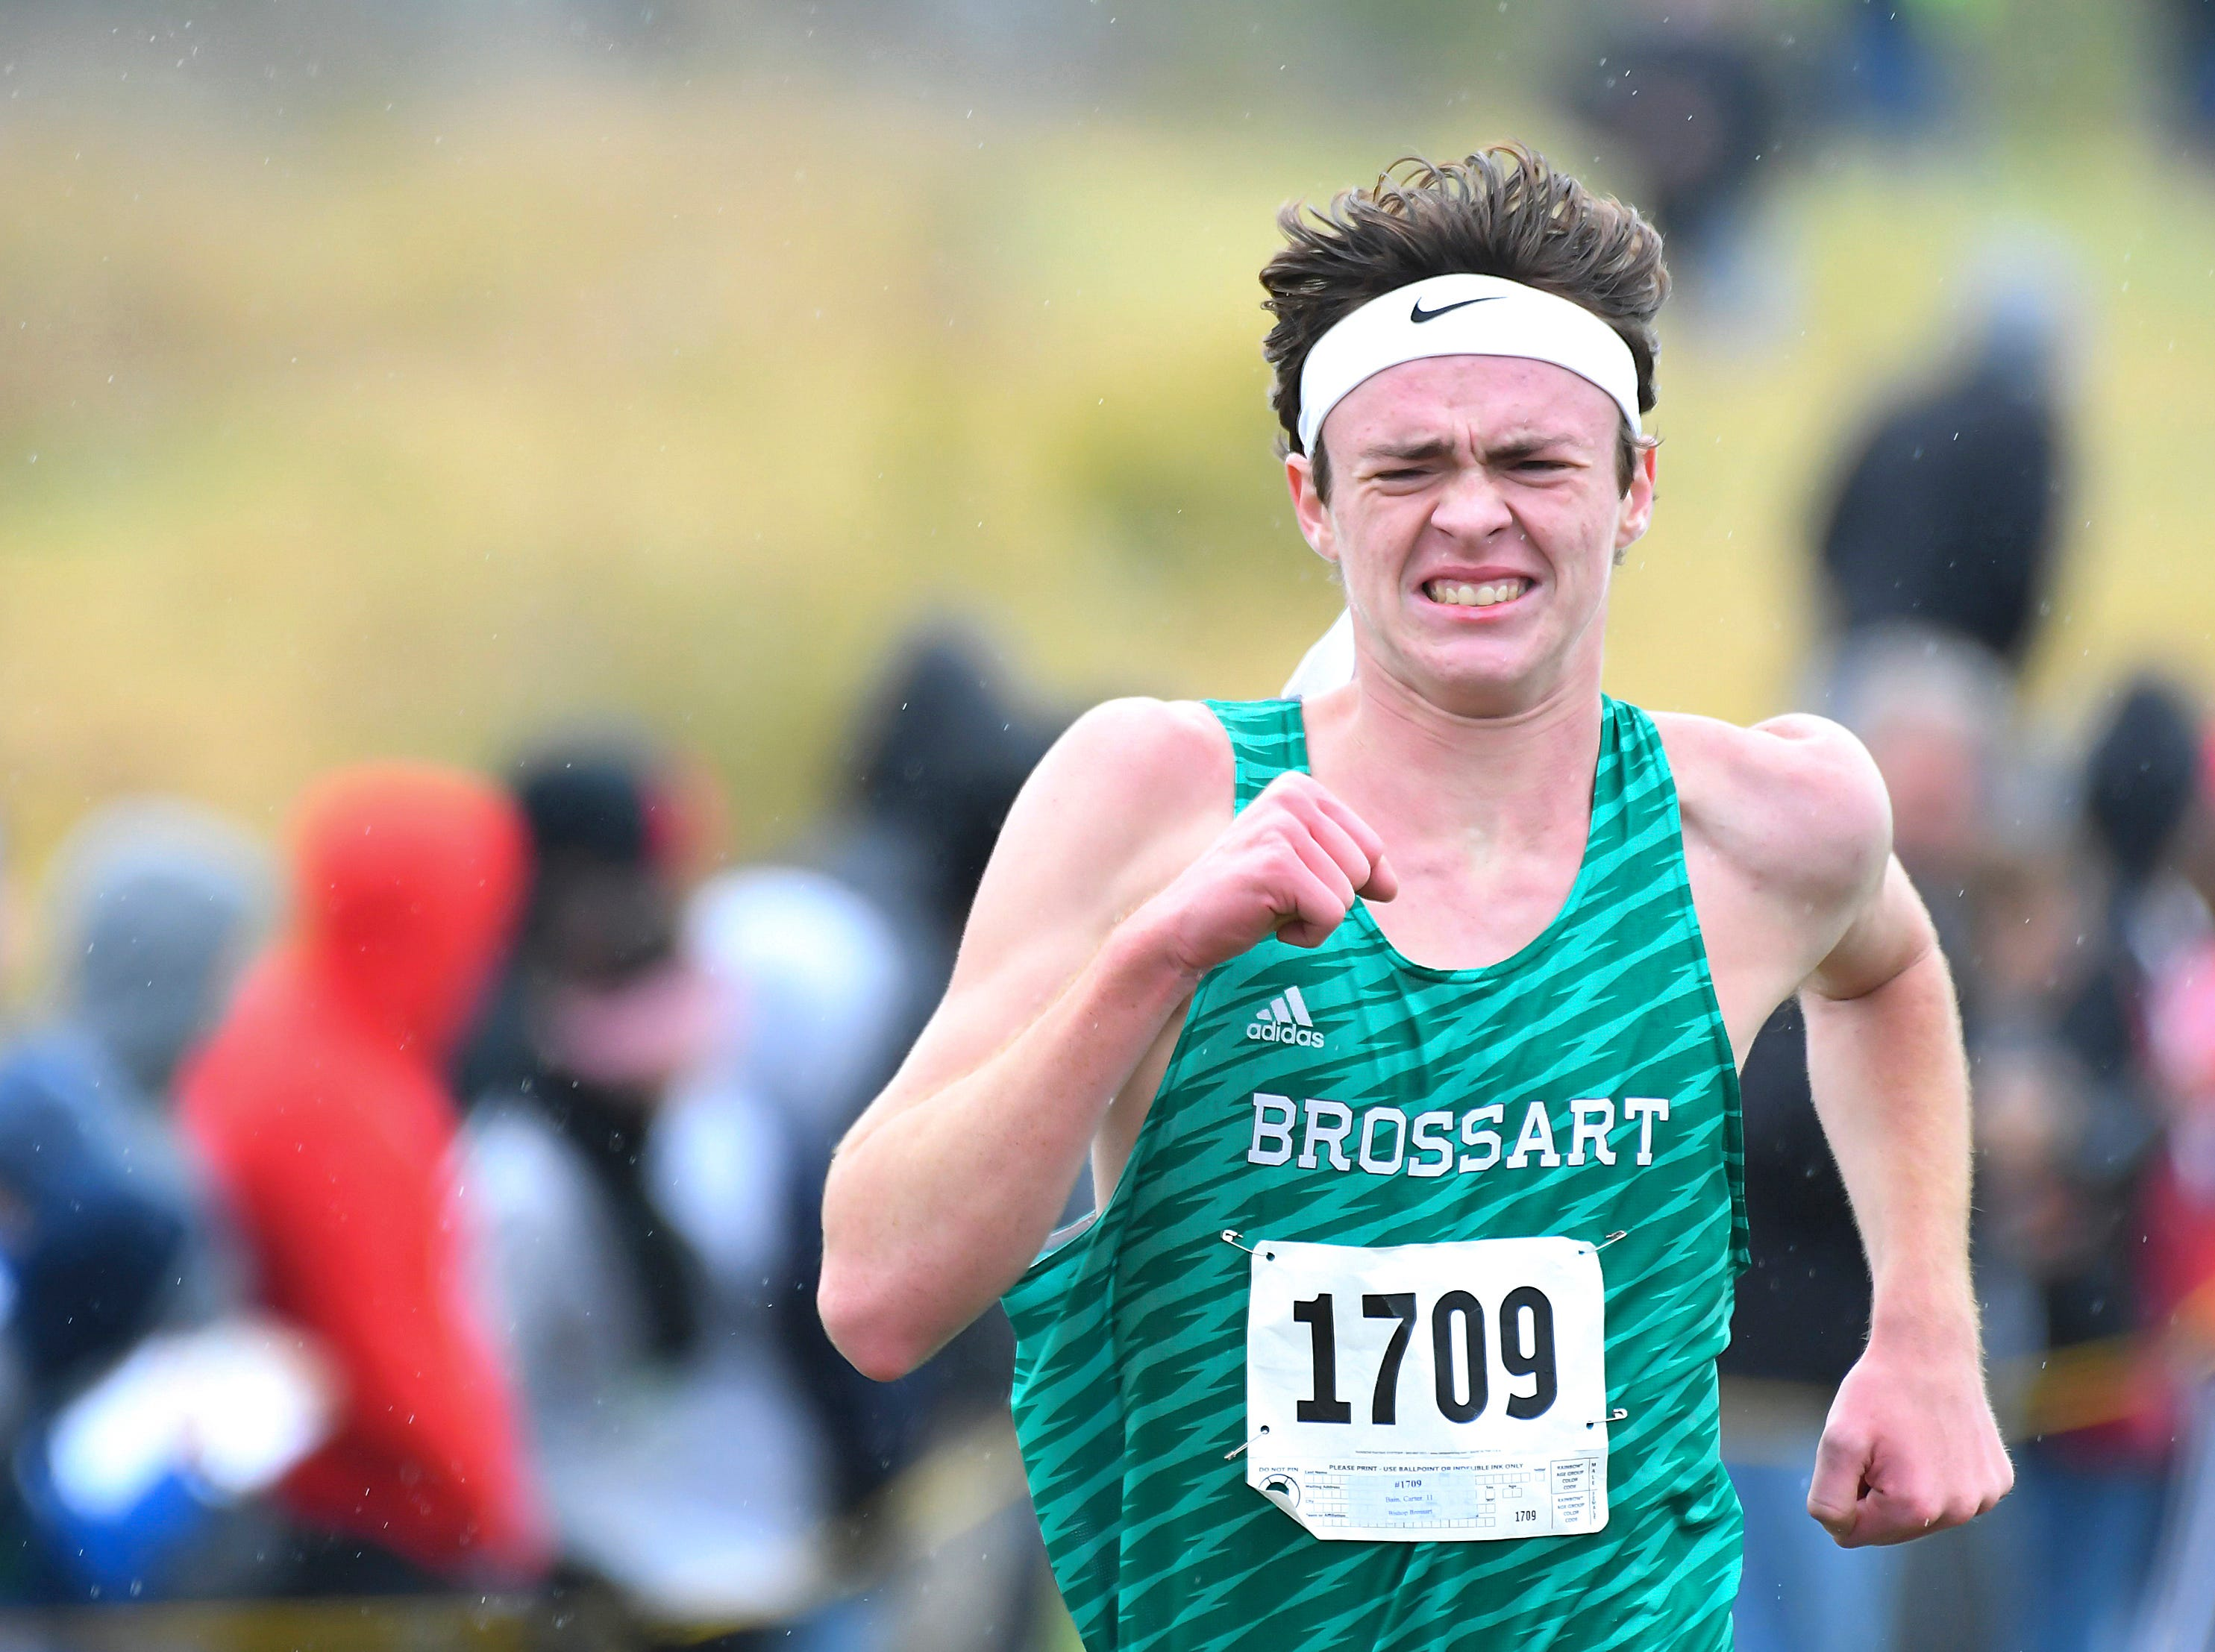 Carter Bain of Bishop Brossart runs in the KHSAA regional cross country championship, Sherman Elementary School, Grant County, KY, Saturday Oct. 27, 2018